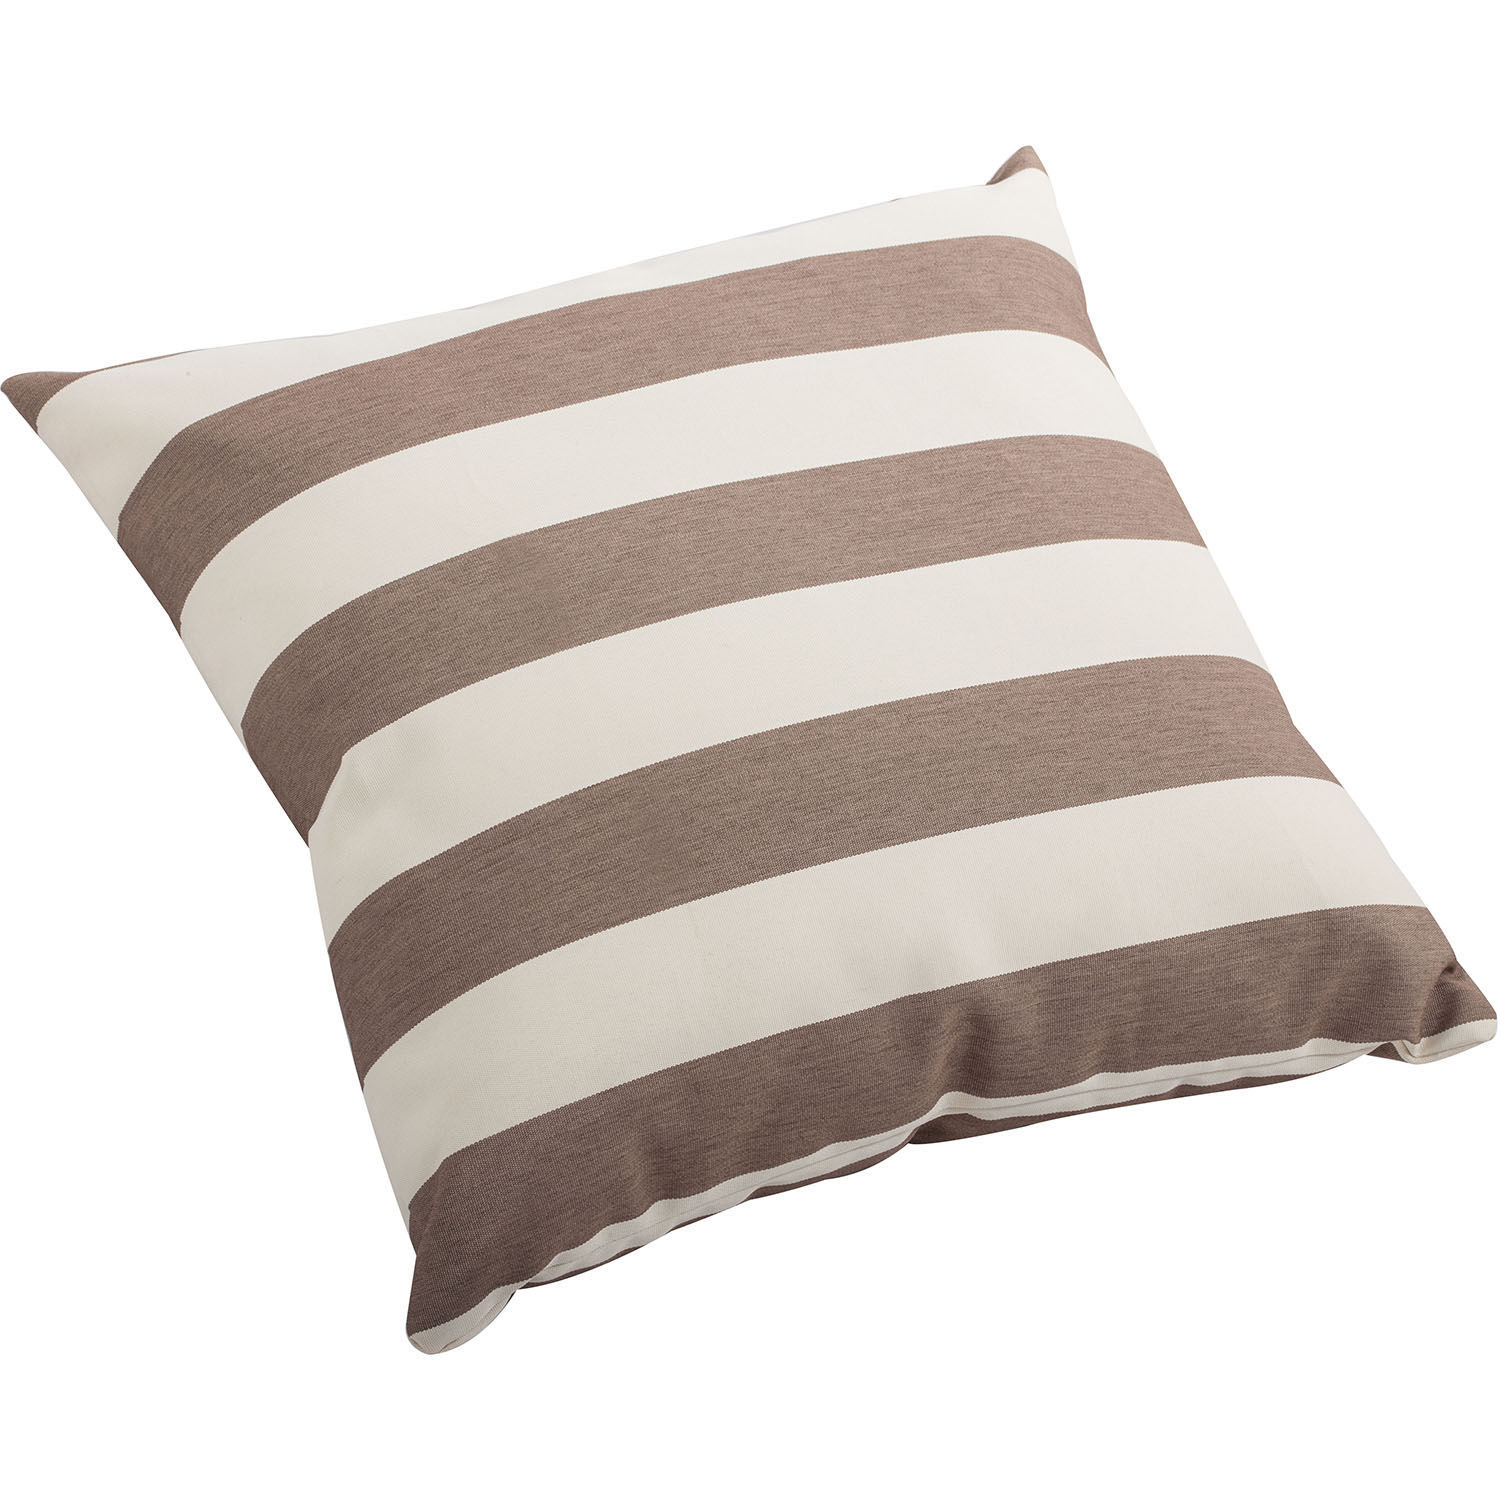 Outdoor Pony Pillow Beige/Brown Bold Pattern: Size Options